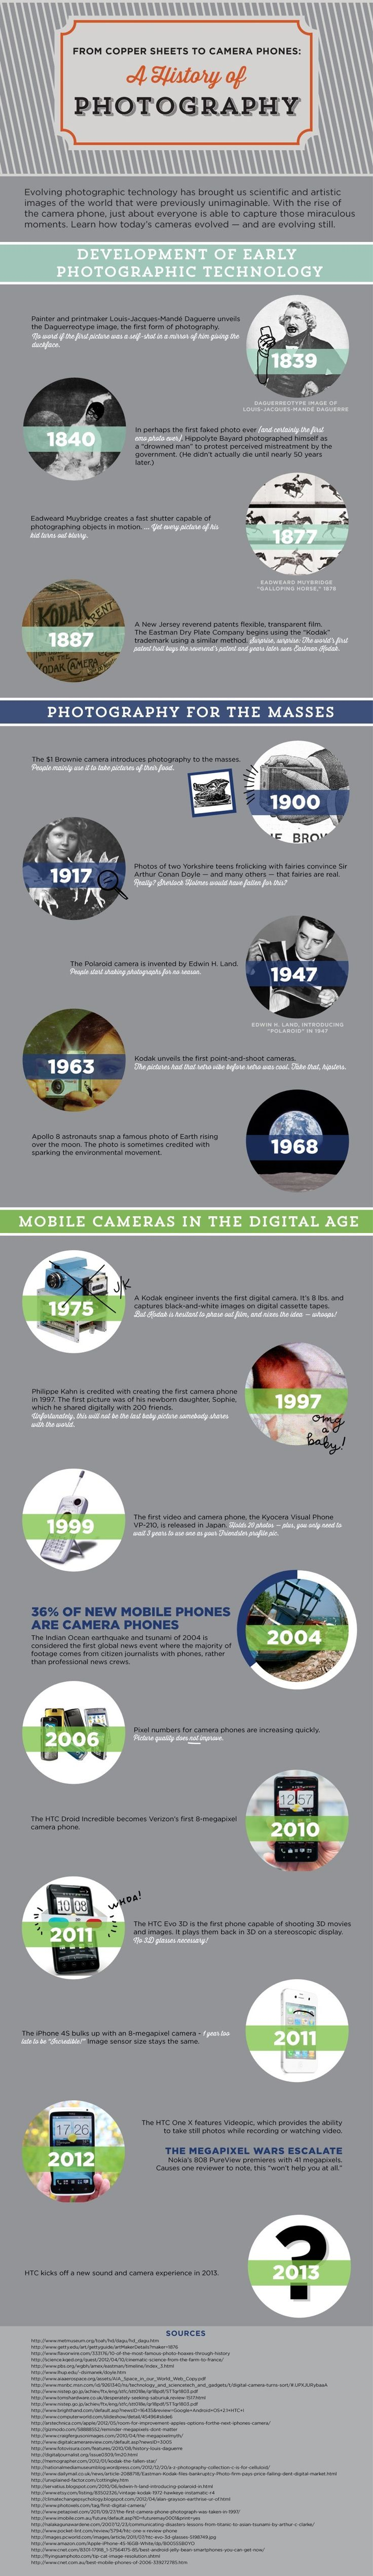 A Visual History Of The Photograph [Infographic] – ReadWrite